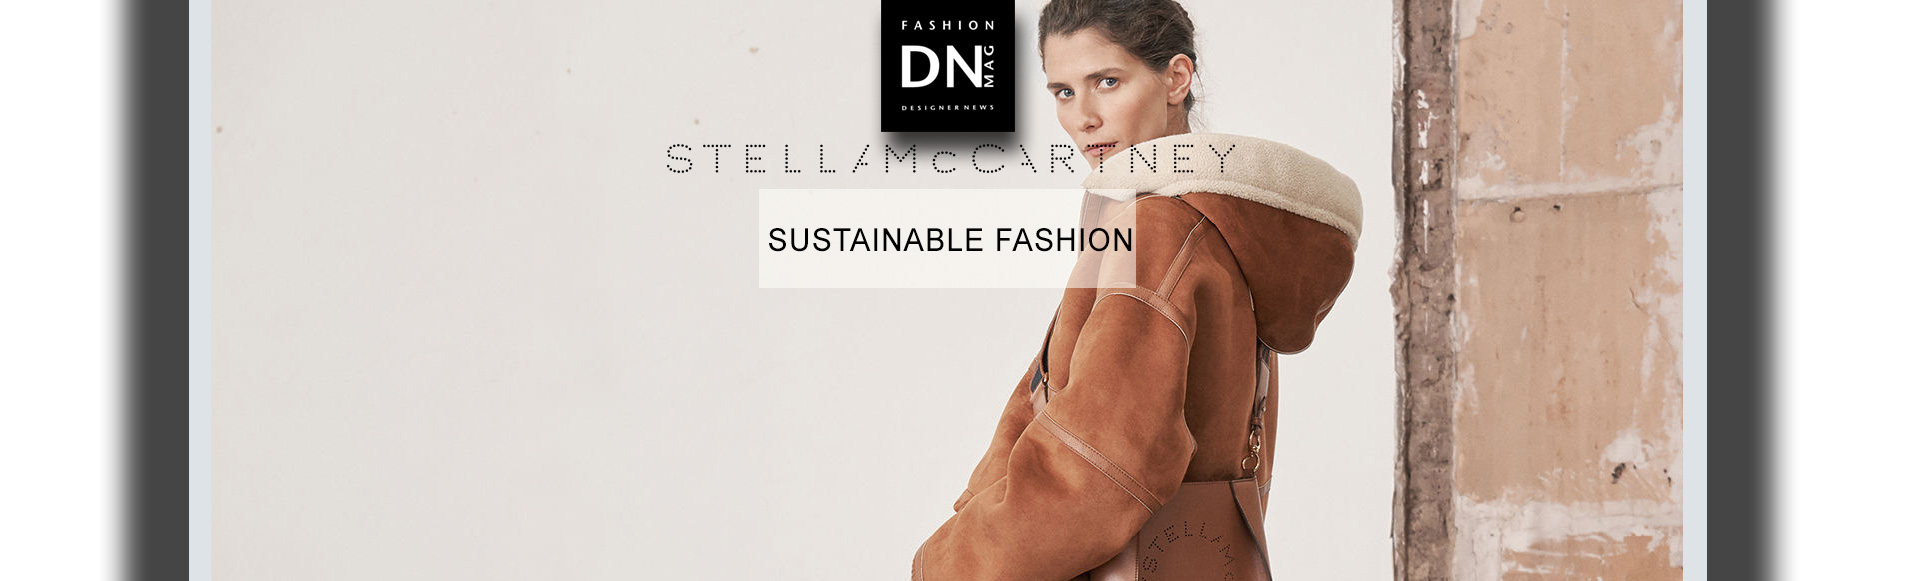 DNMAG-Sustainable Fashion-Stella McCartney